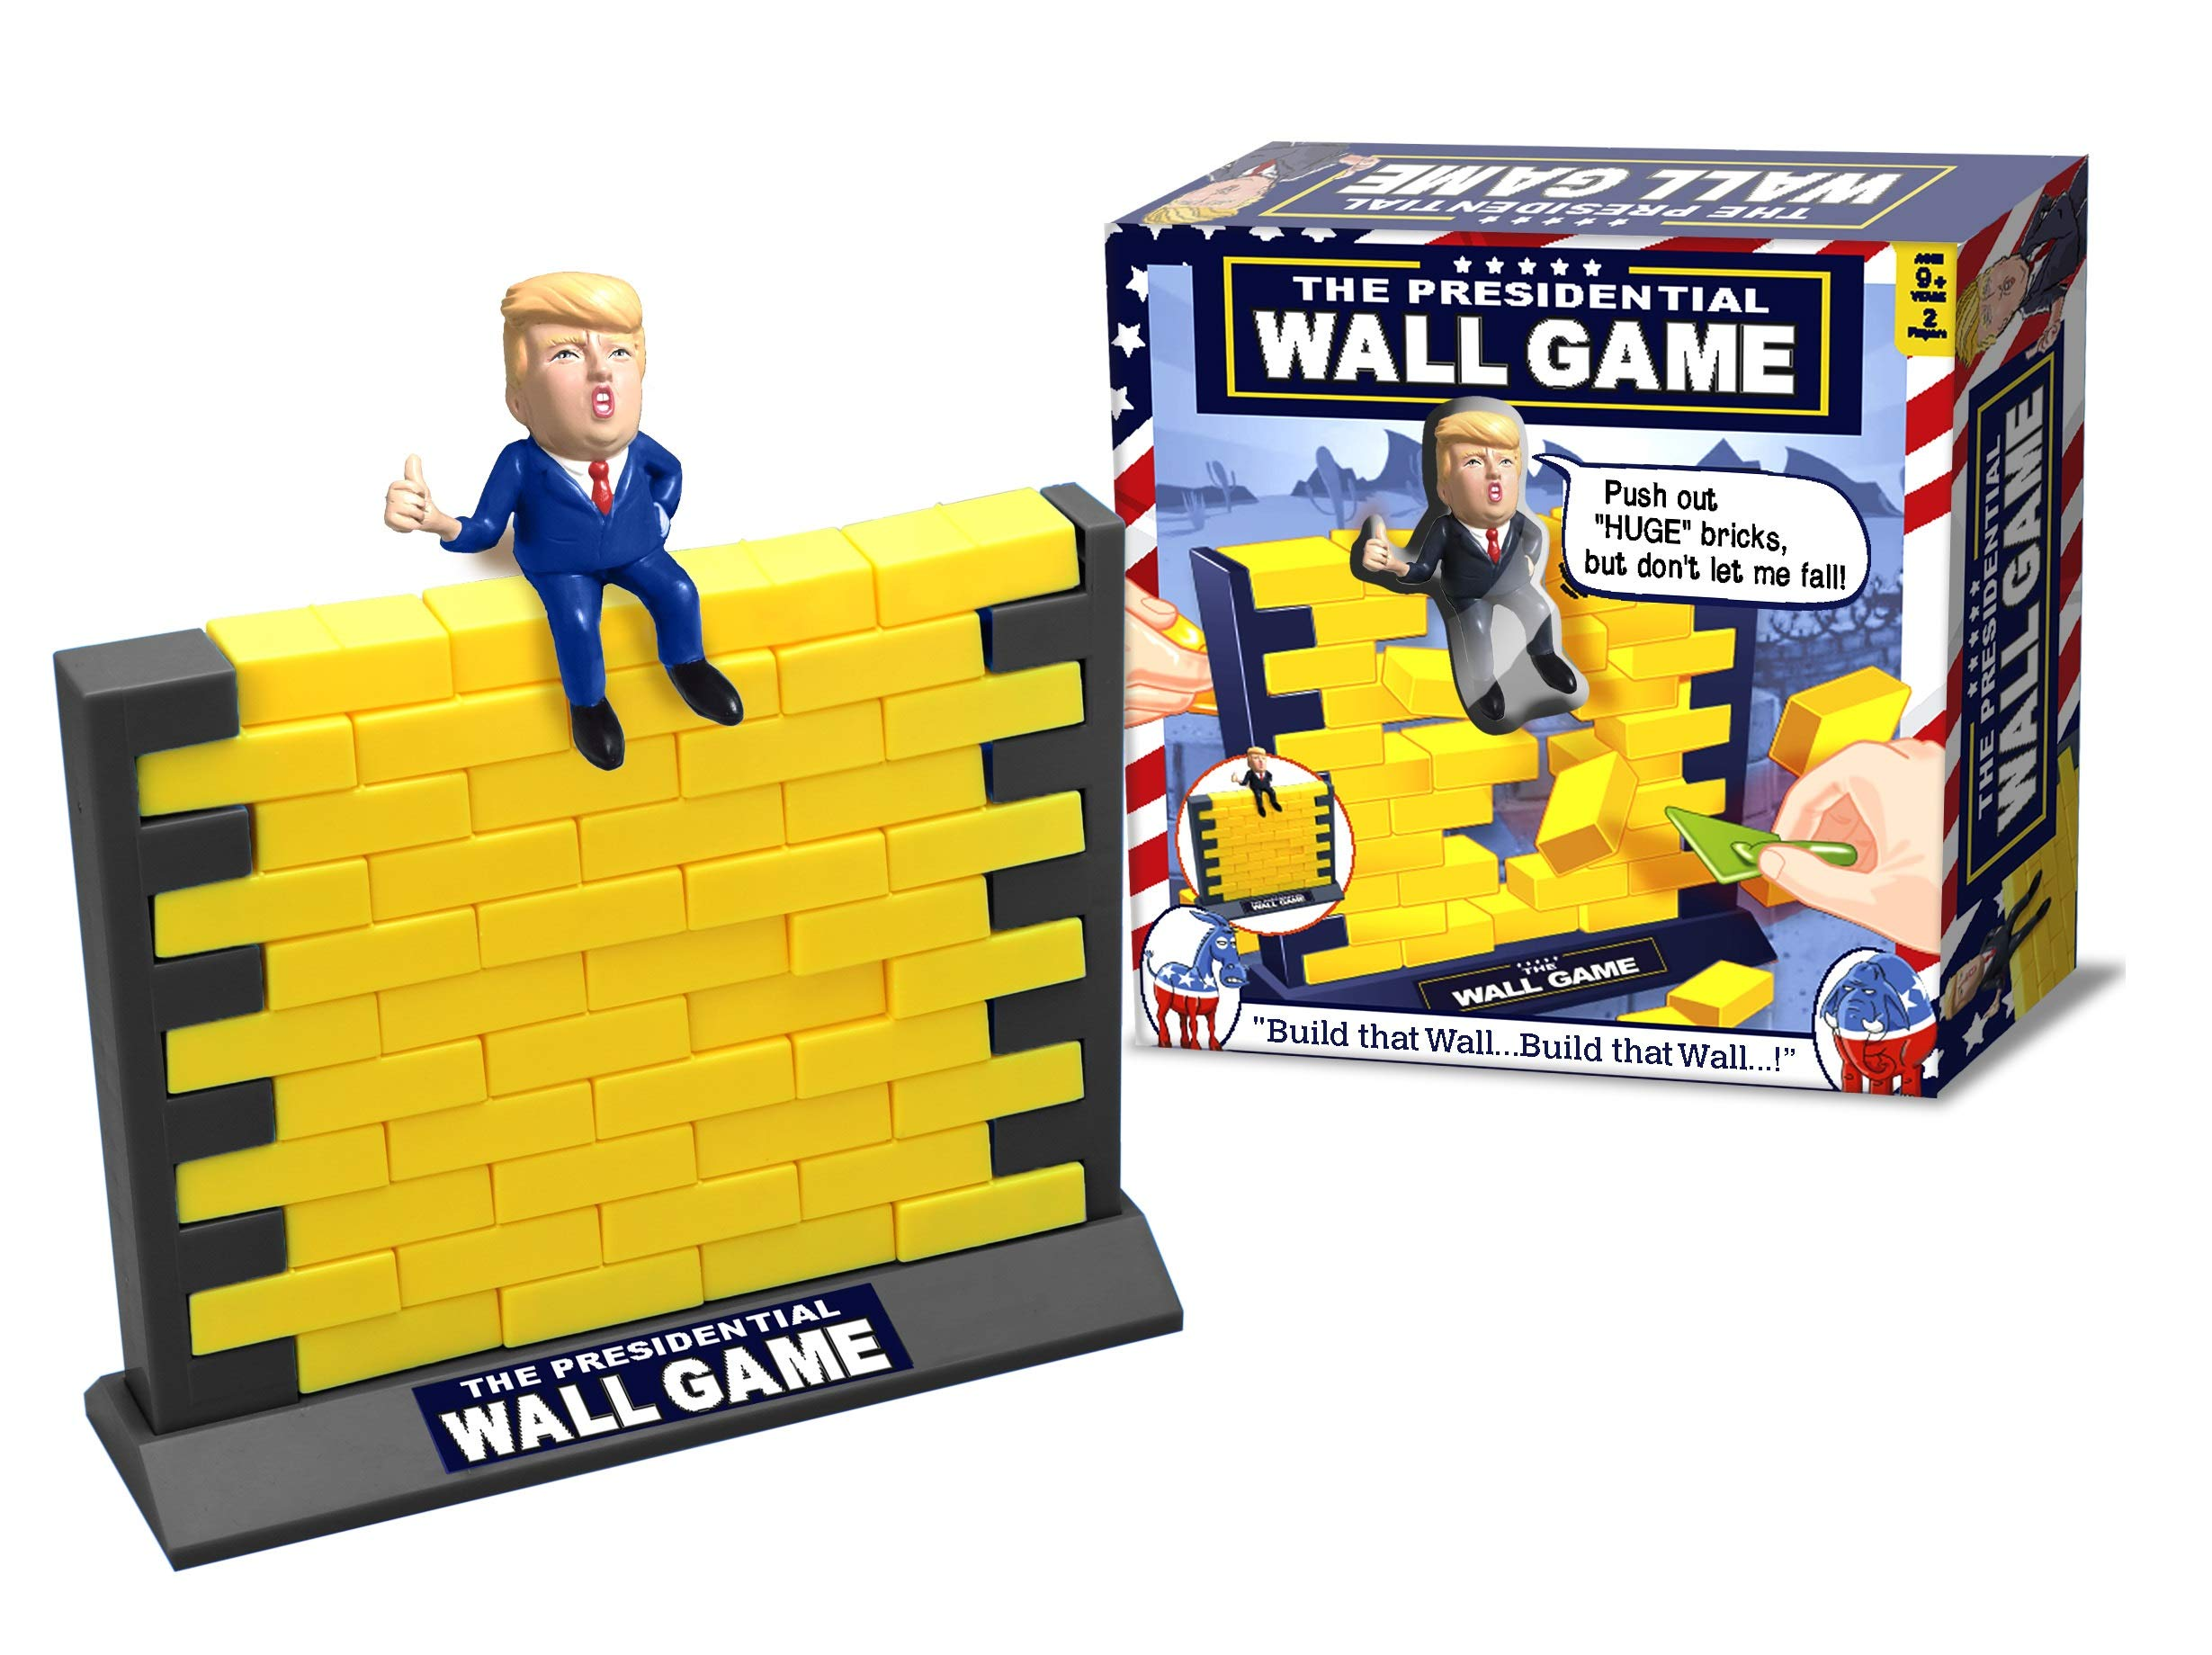 The Trump Presidential Wall Game - MAGA by New Entertainment